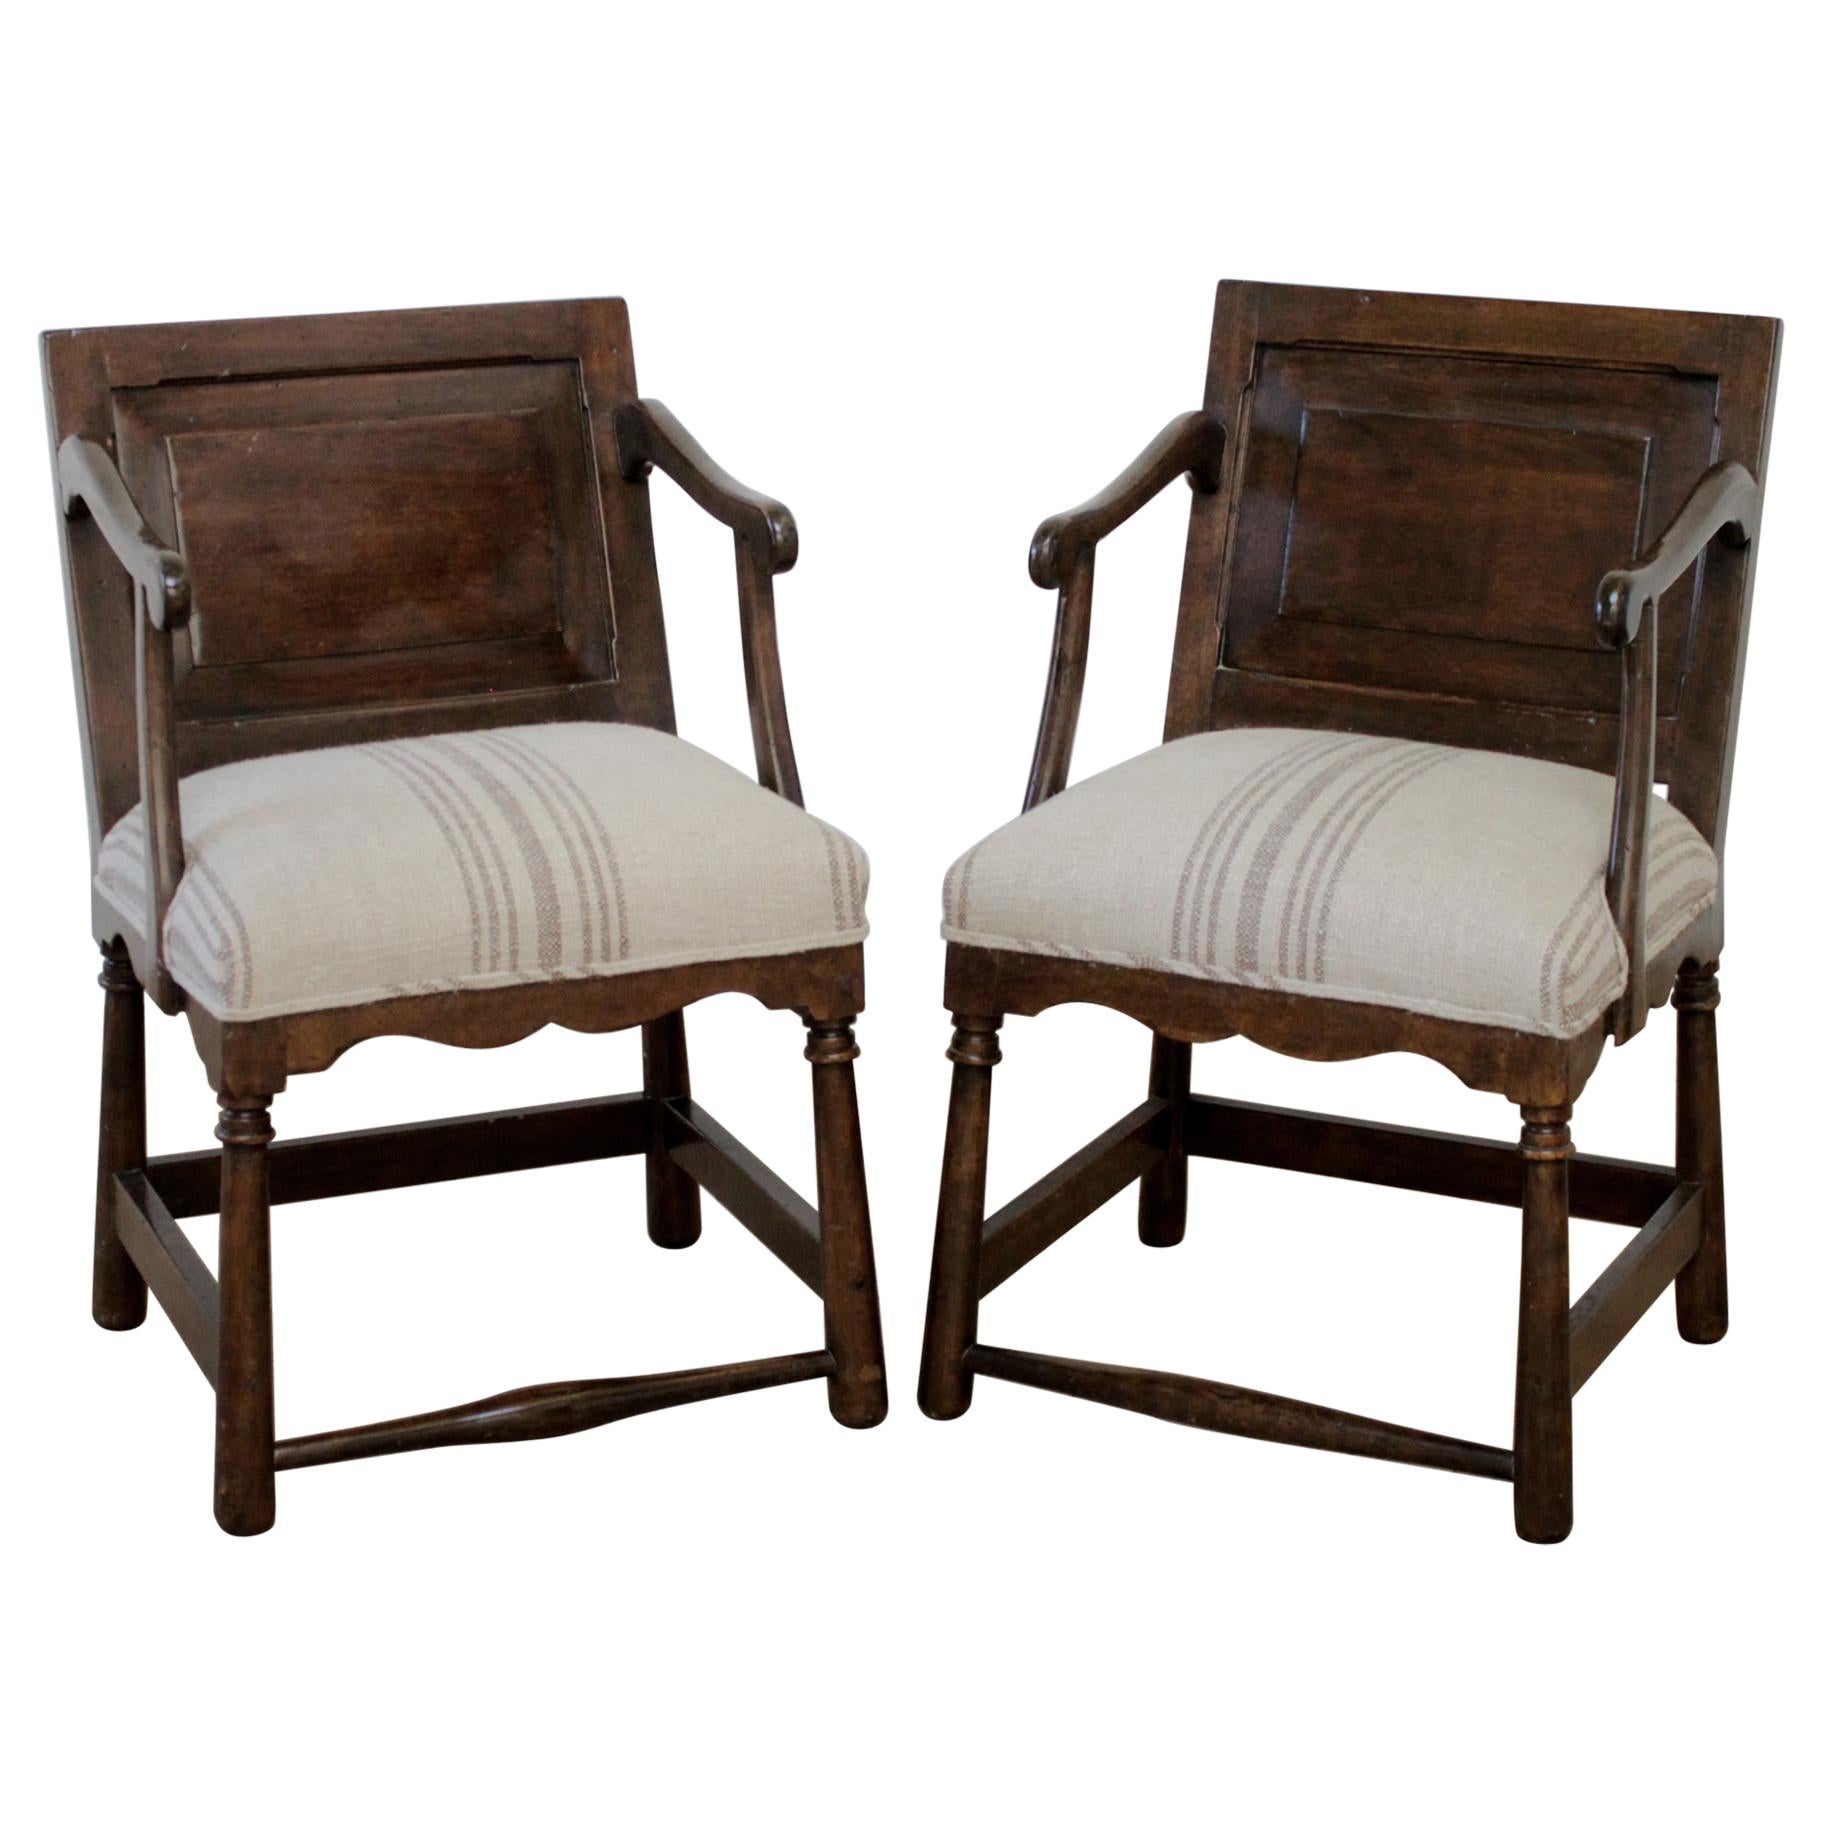 Pair of Fruitwood Carved and Upholstered Armchairs